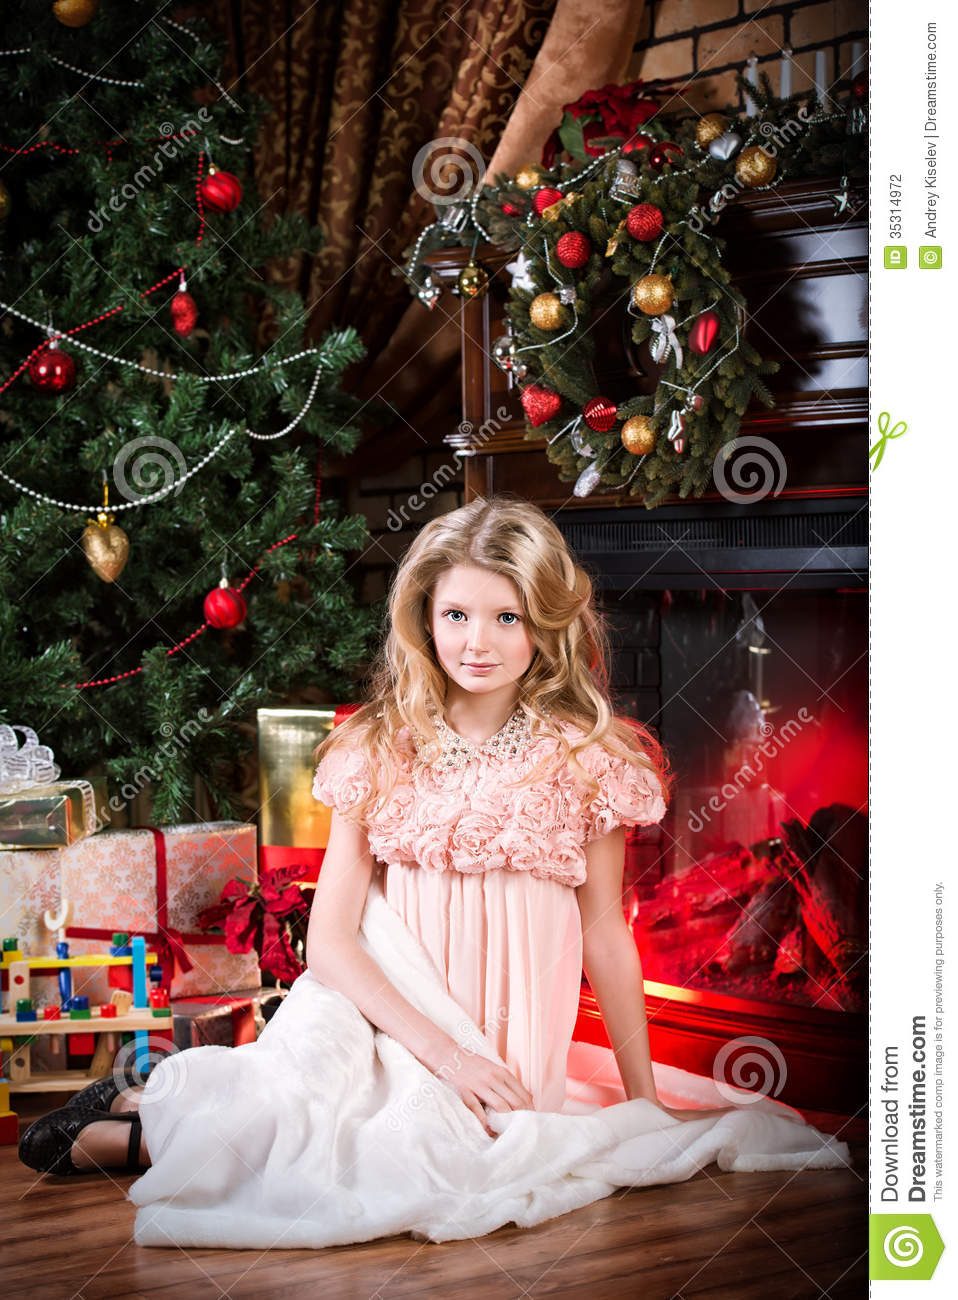 dreamy girl stock photography image 35314972